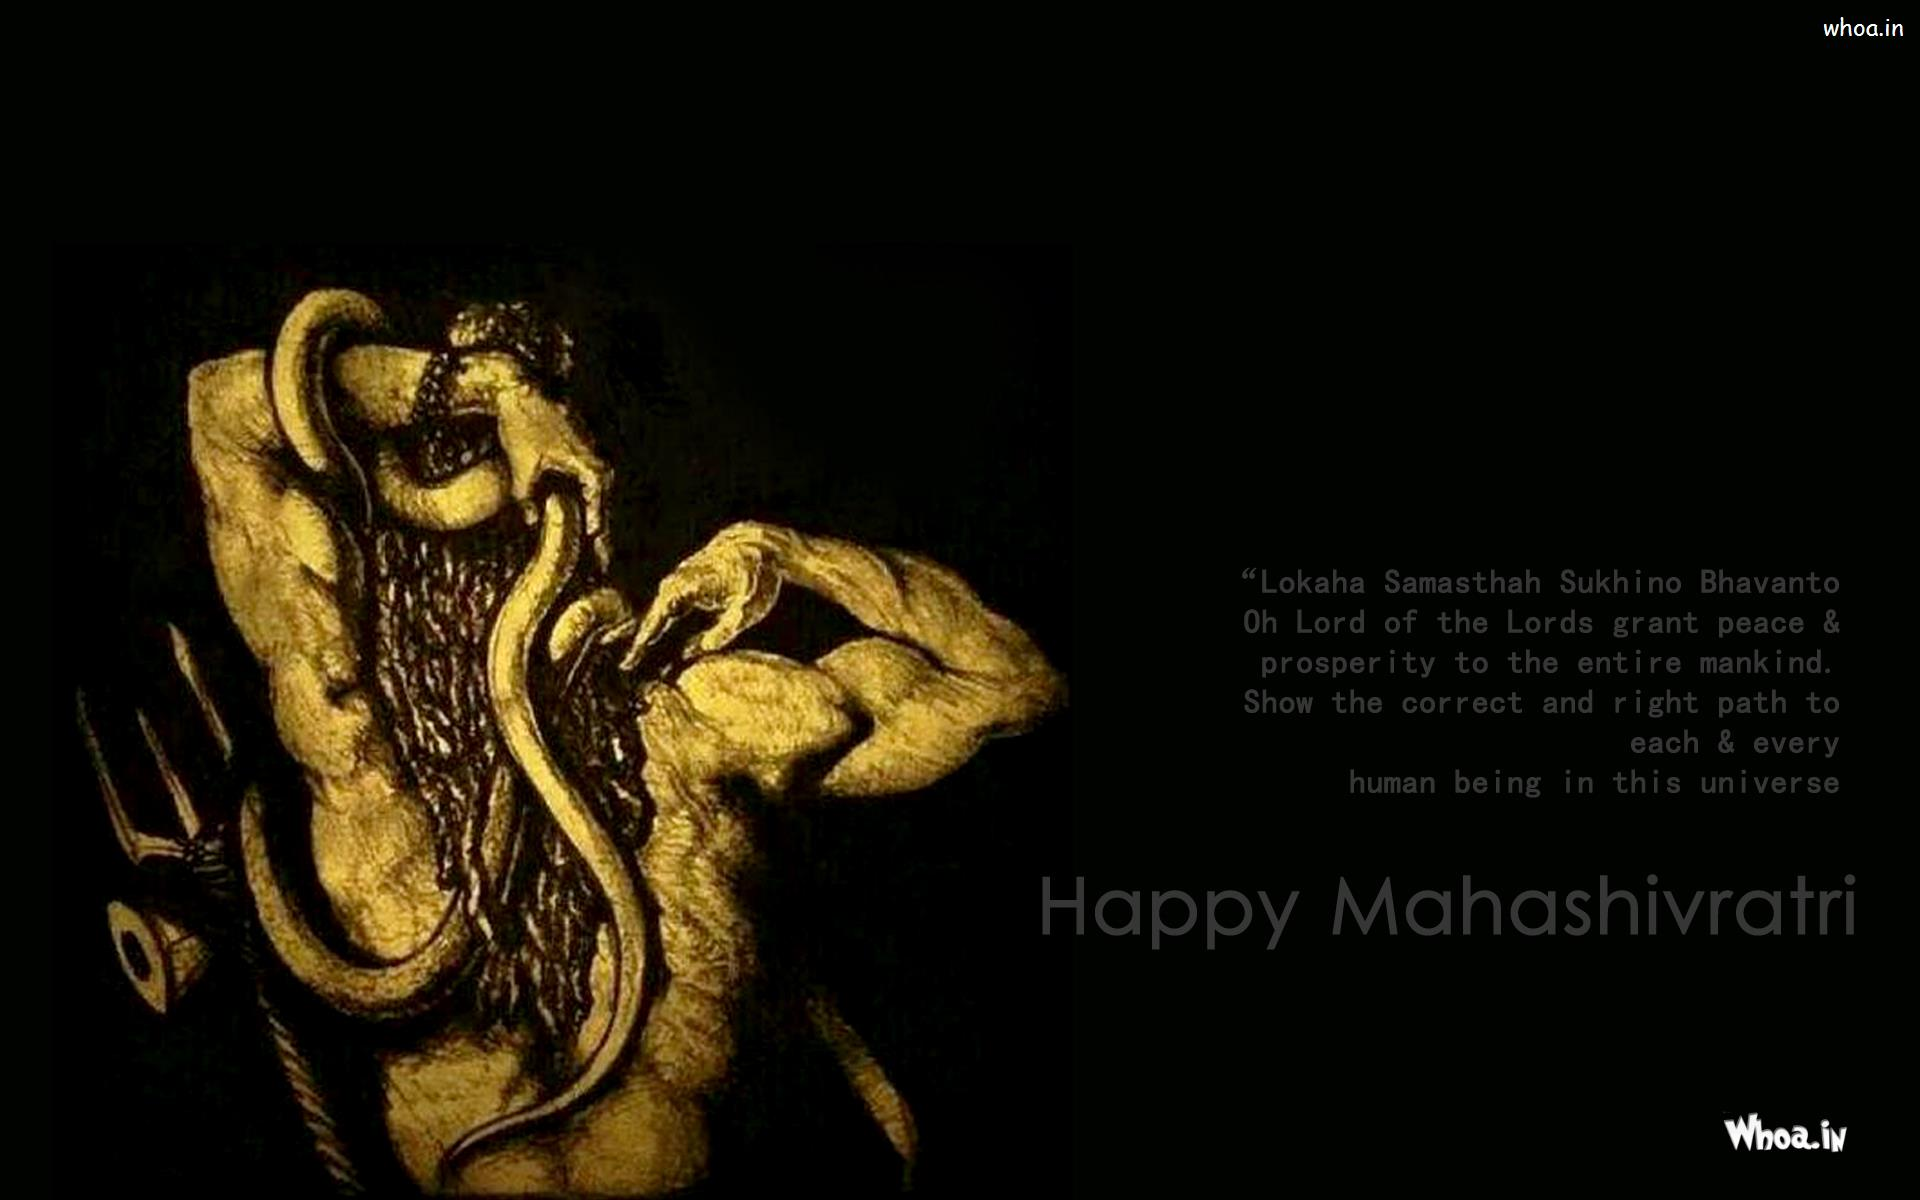 Happy mahashivratri greeting hd wallpapers and images colleciton download m4hsunfo